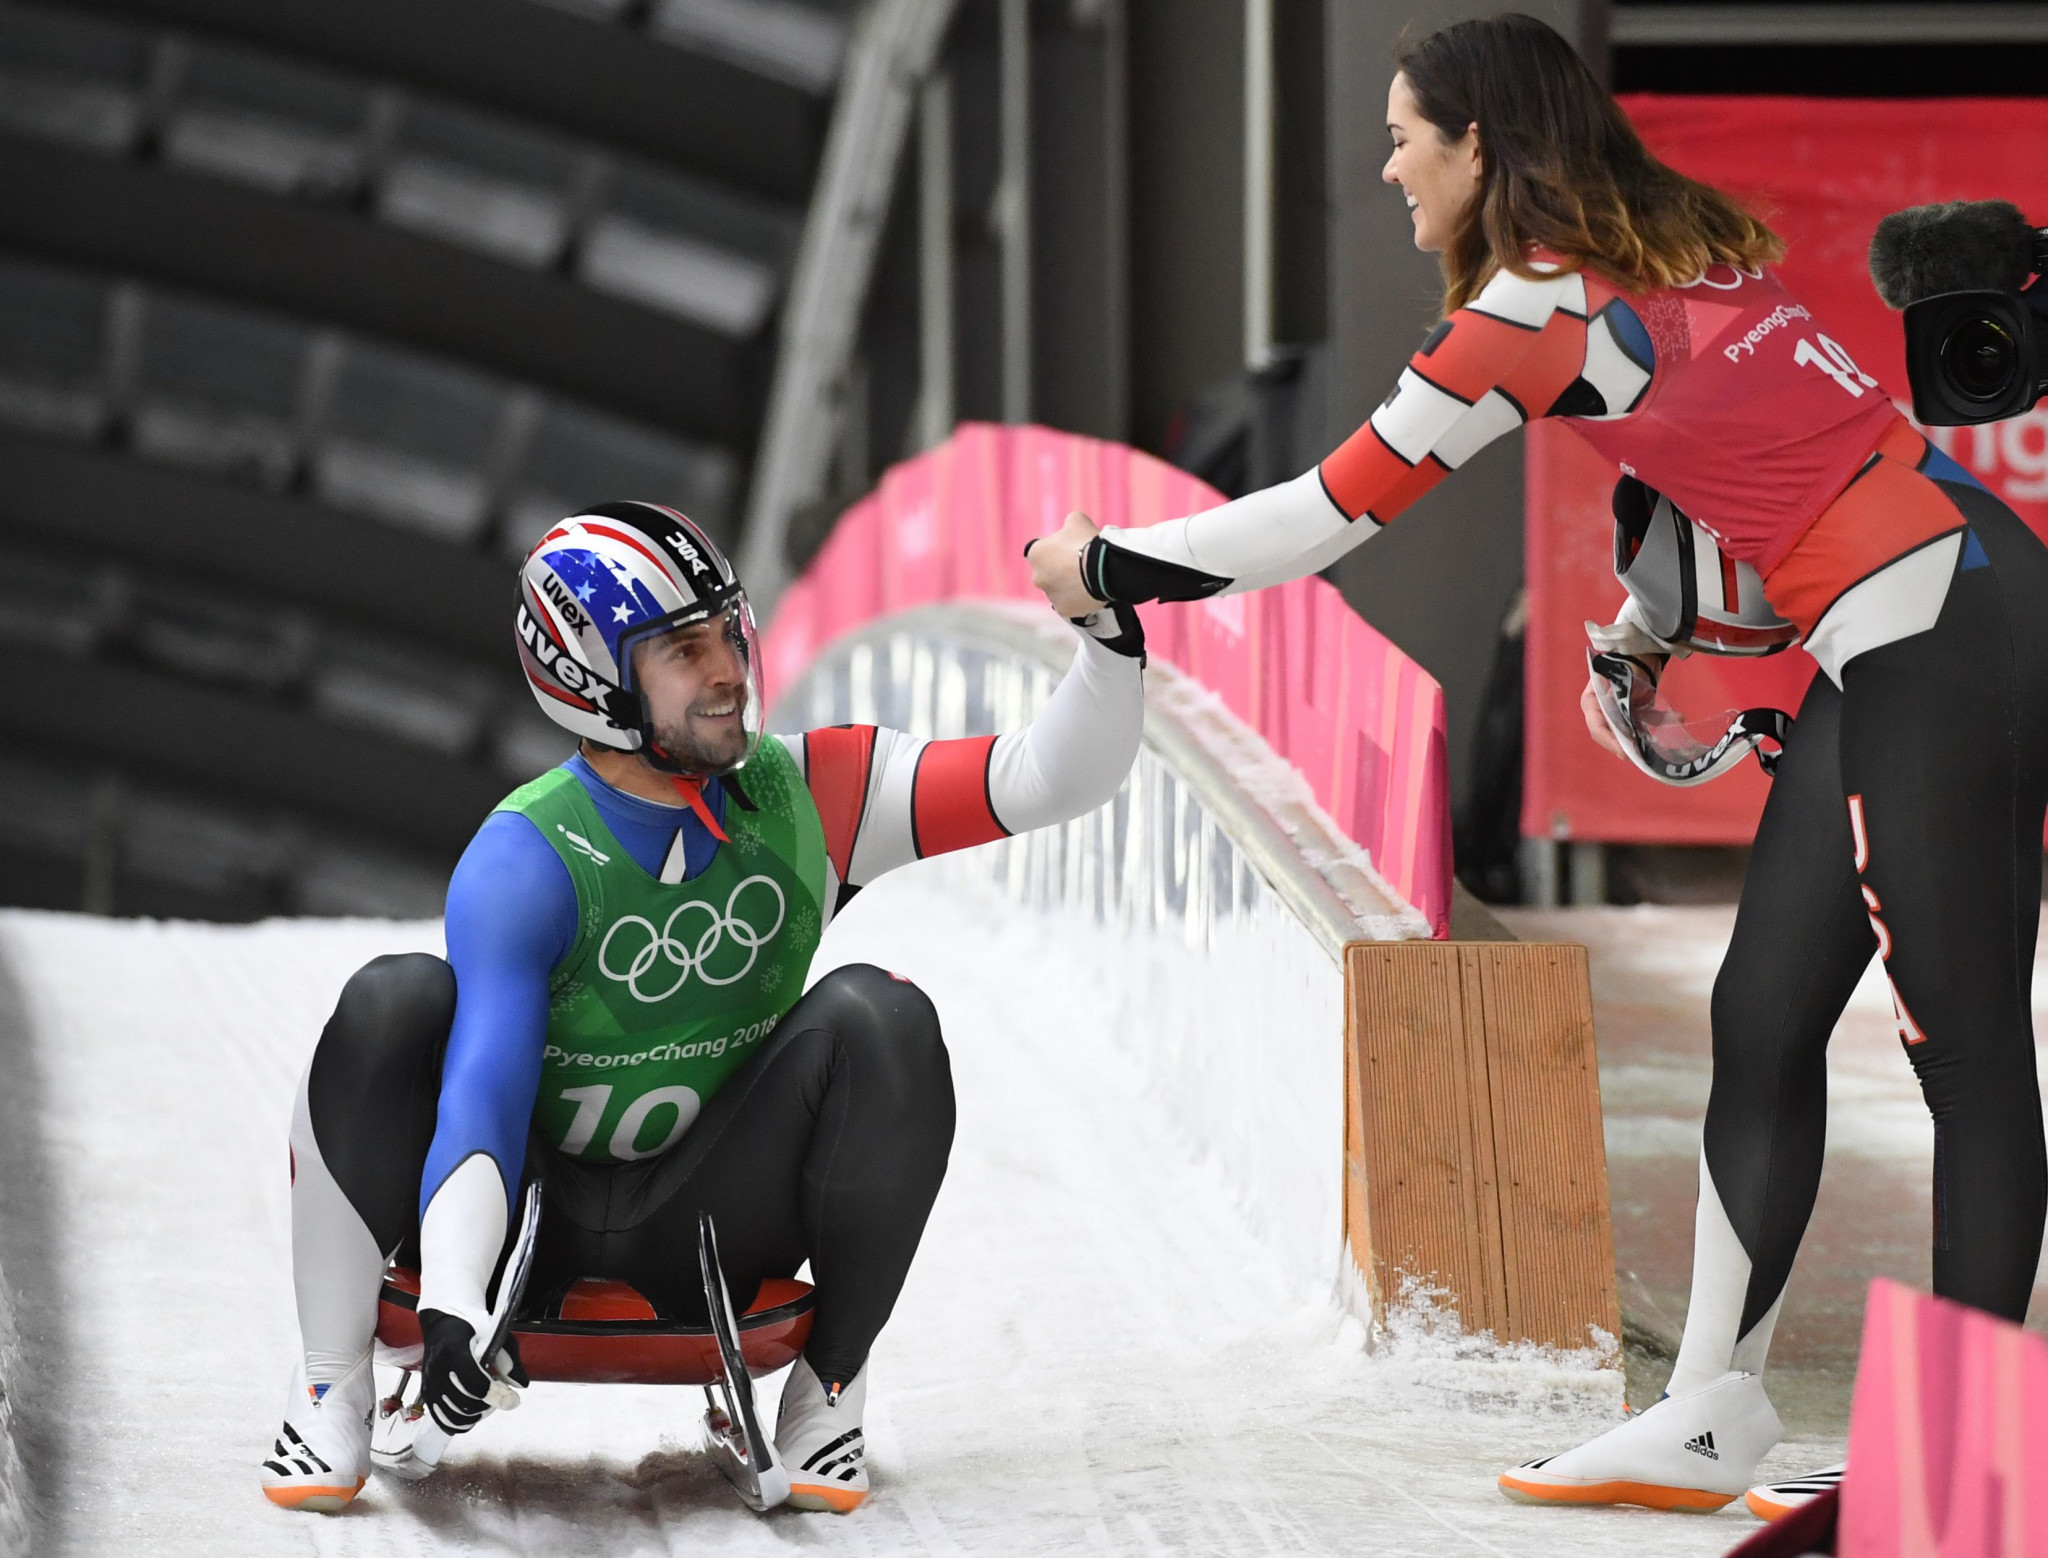 Chris Mazdzer claimed silver in the men's luge event at the 2018 Winter Olympics ©Getty Images